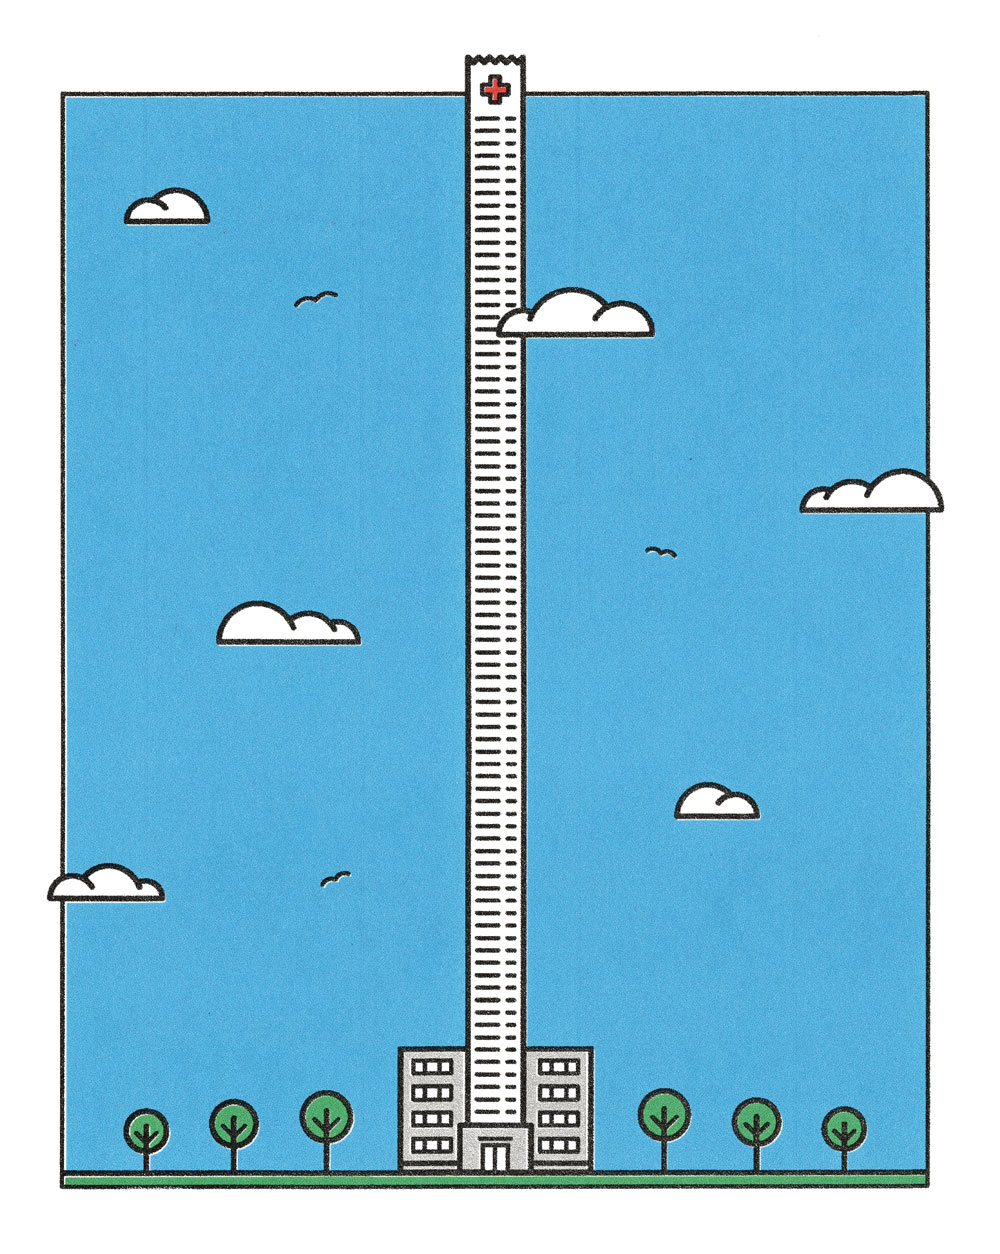 A hospital tower stretches into the sky, its design reminiscent of a very long receipt.